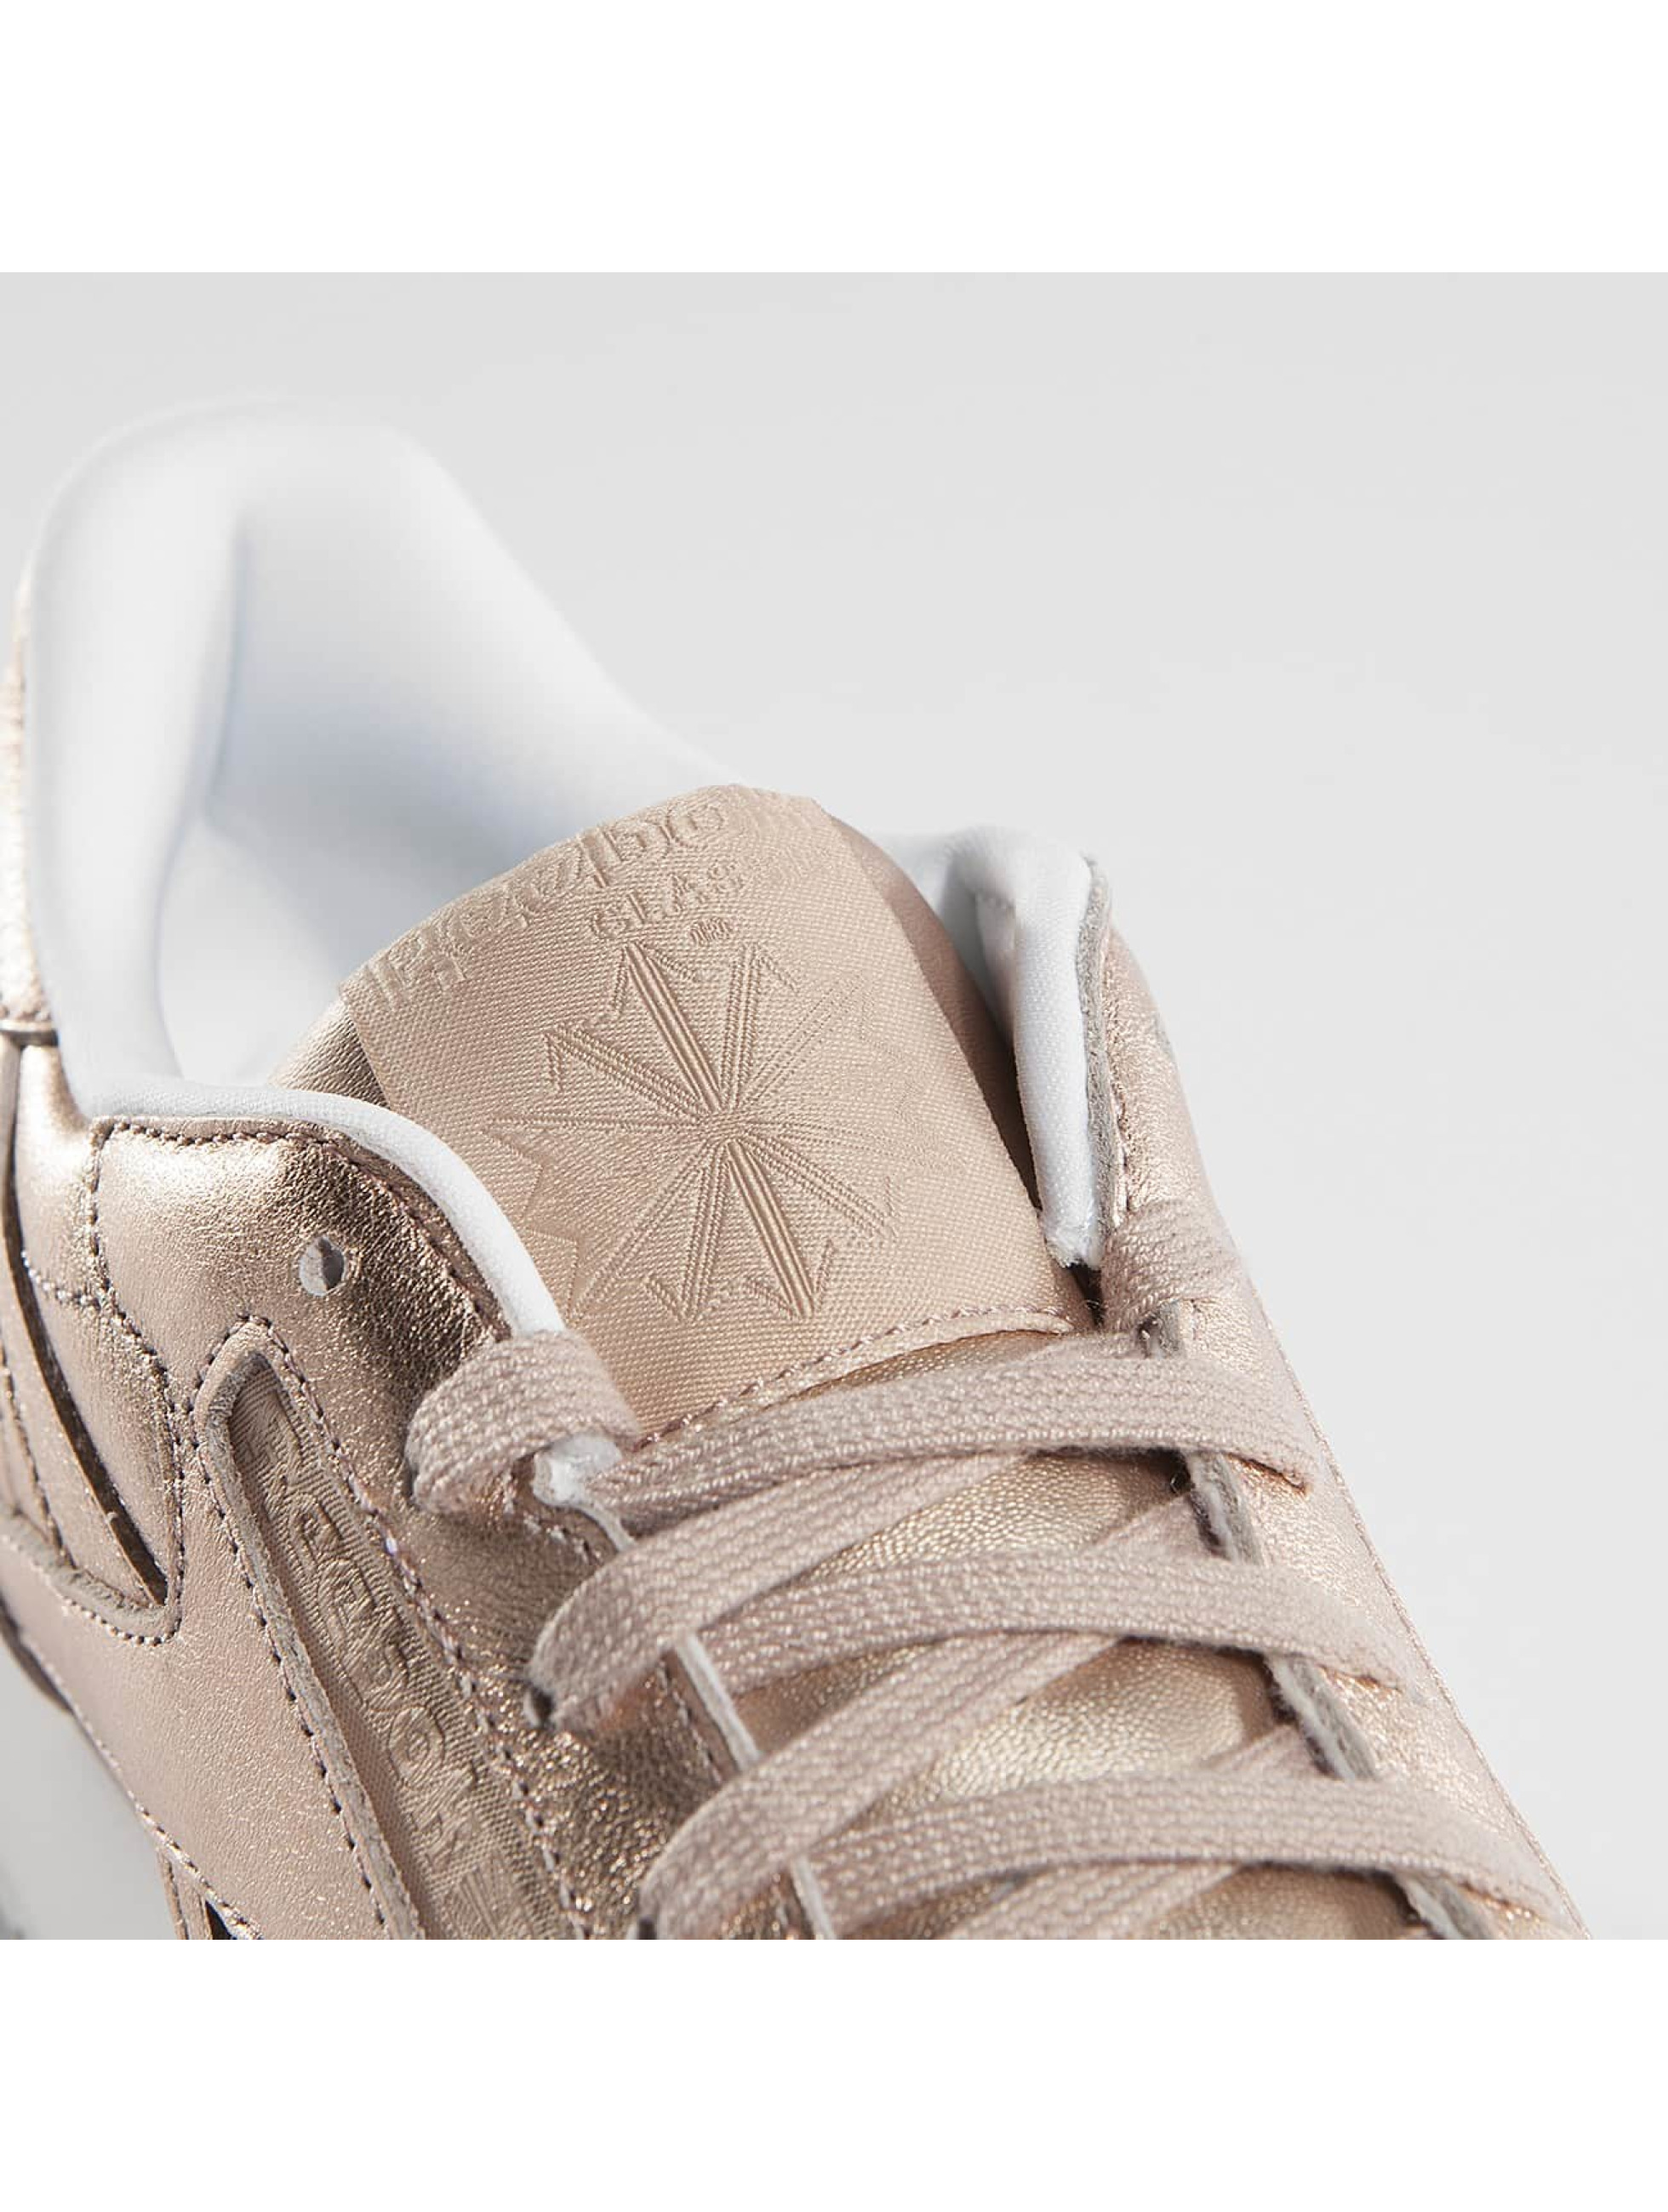 Reebok Baskets Classic Leather Melted Metallic Pearl rose